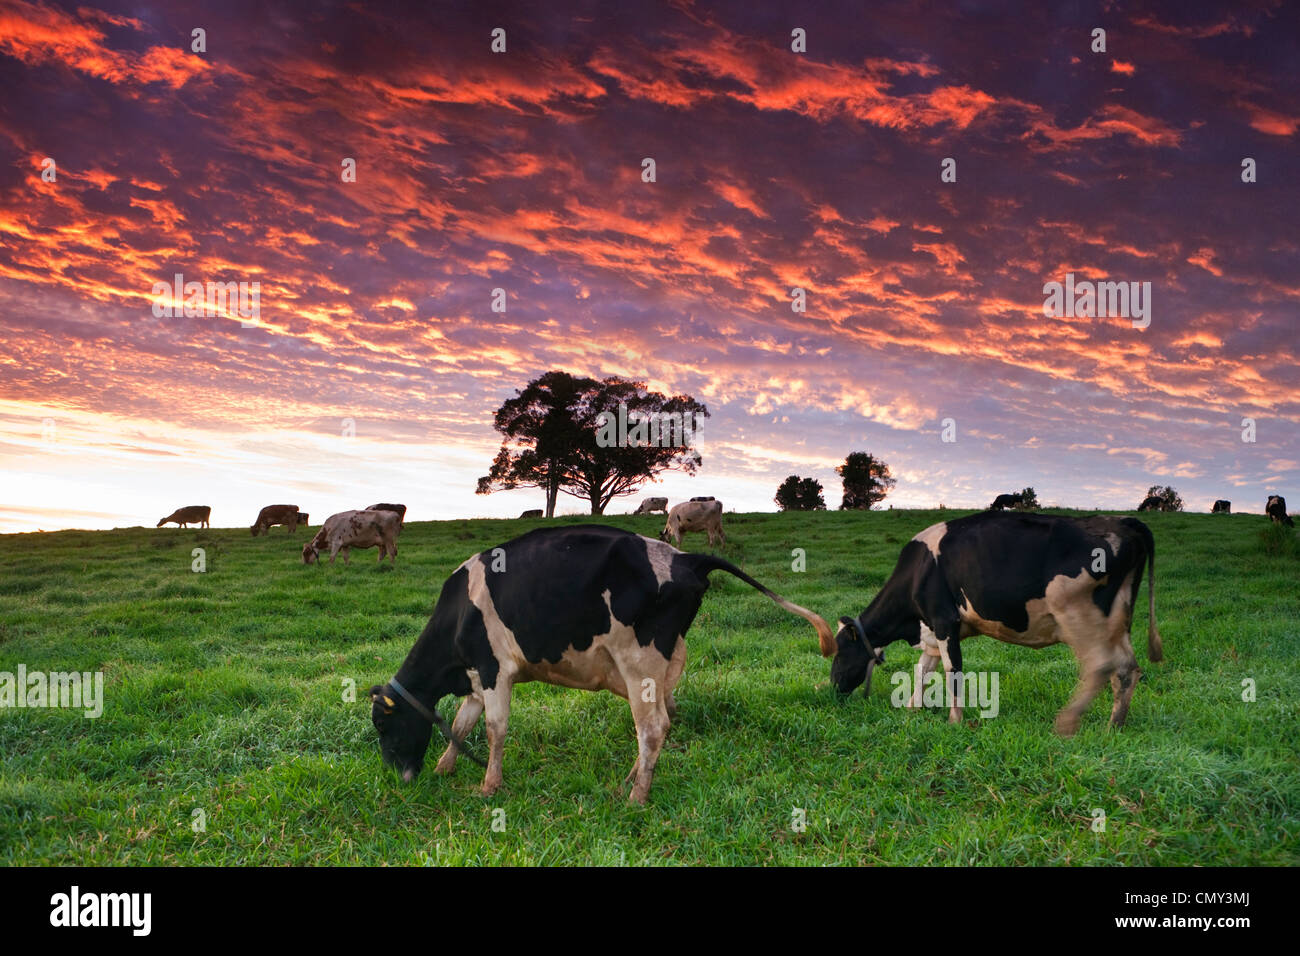 Dairy cows grazing in pastures at twilight. Millaa Millaa, Atherton Tablelands, Queensland, Australia - Stock Image